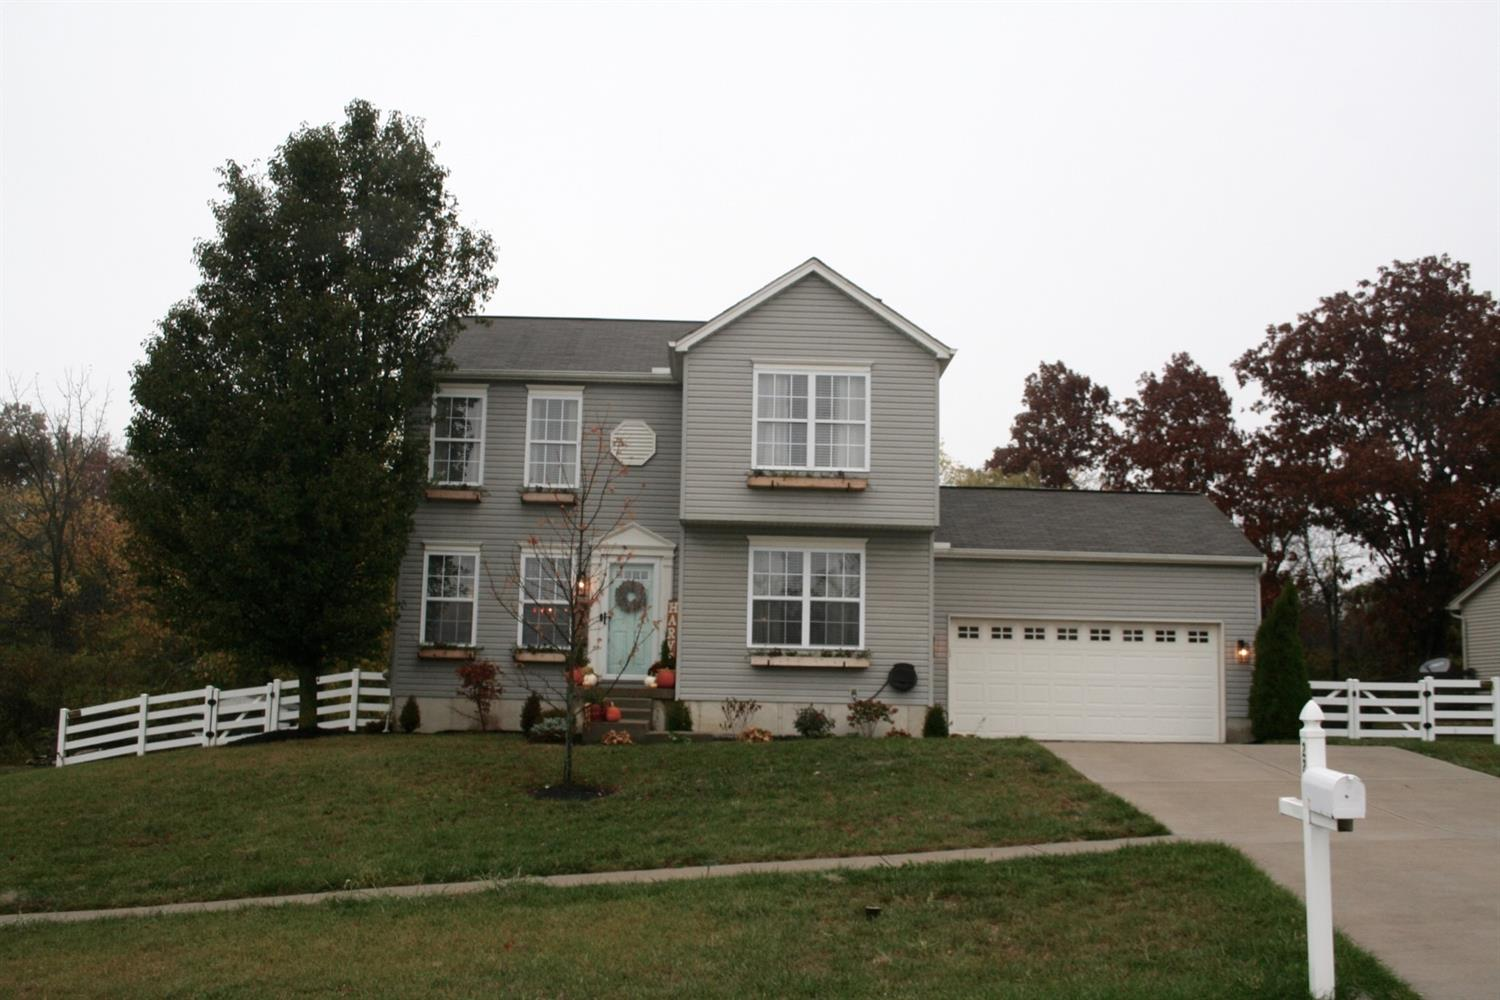 Don't miss out on this beautiful 2 story home featuring hard wood floors throughout and an updated kitchen. Also offers a 1st floor office, 2nd floor laundry, and a morning room with French doors out to a spacious fenced in yard.  The full basement with a rough in and egress window is waiting for your finishes!